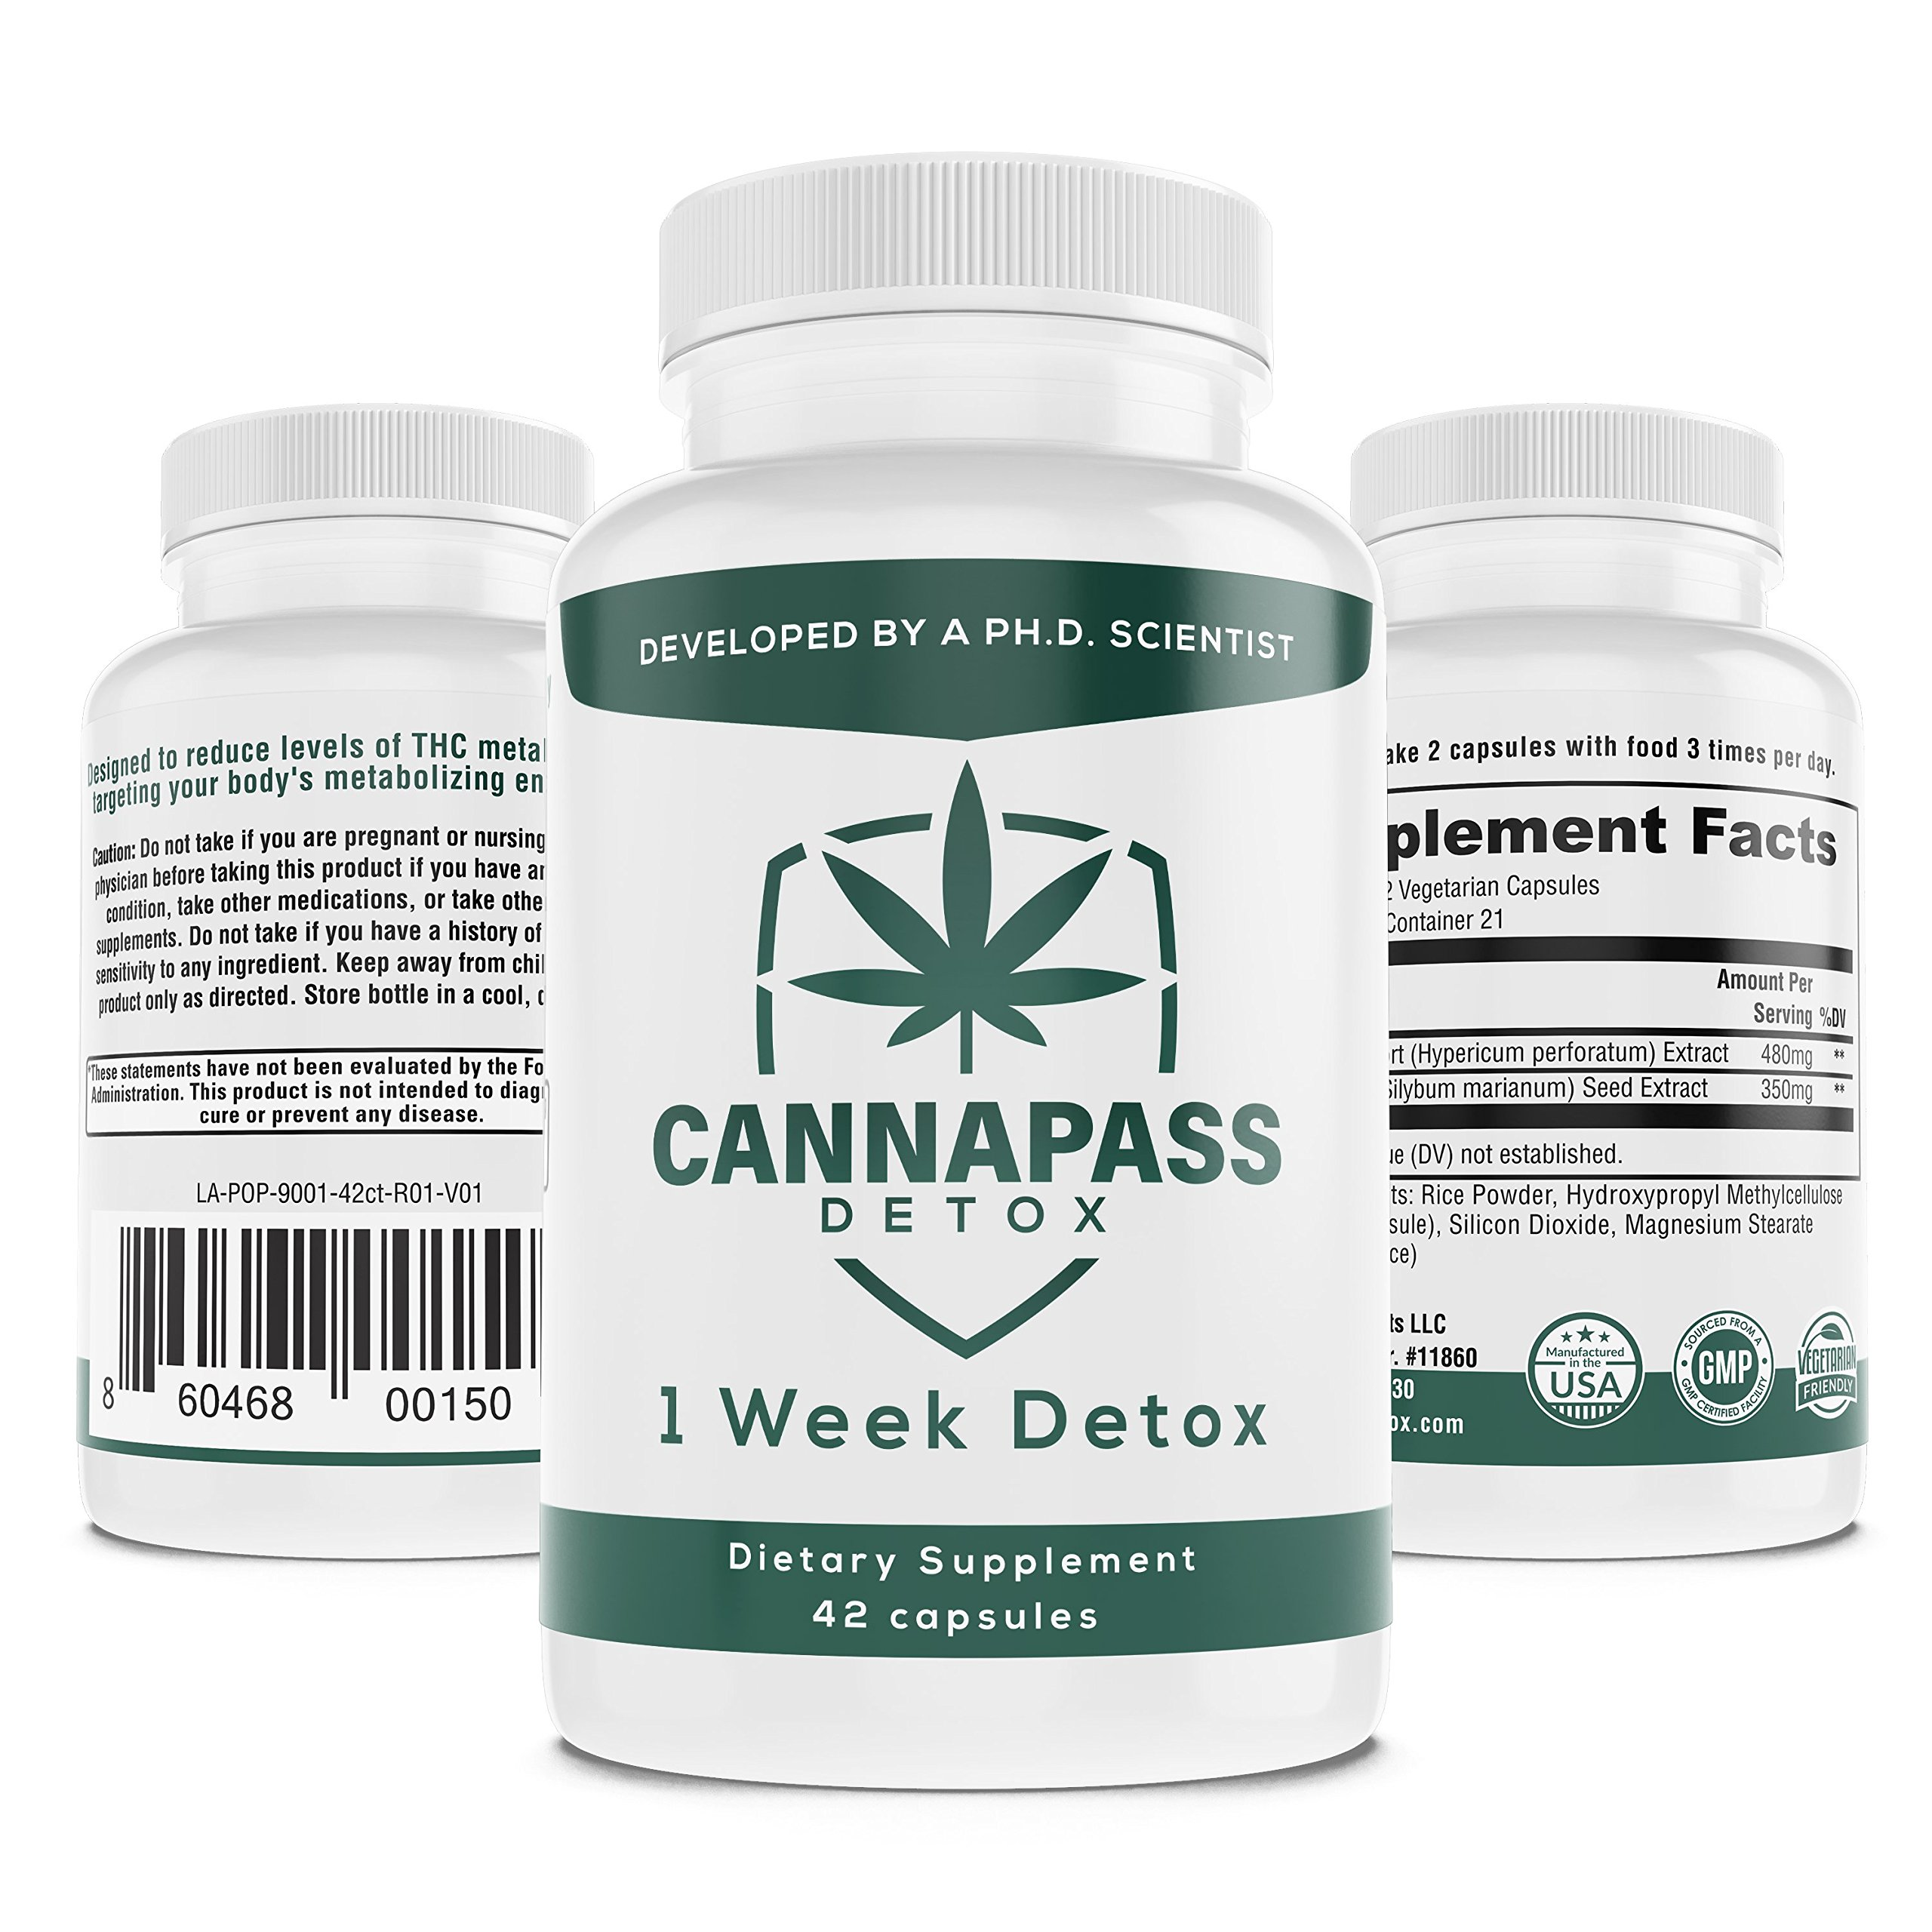 CannaPass THC Detox - 1 Week Supply by CannaPass Detox (Image #3)